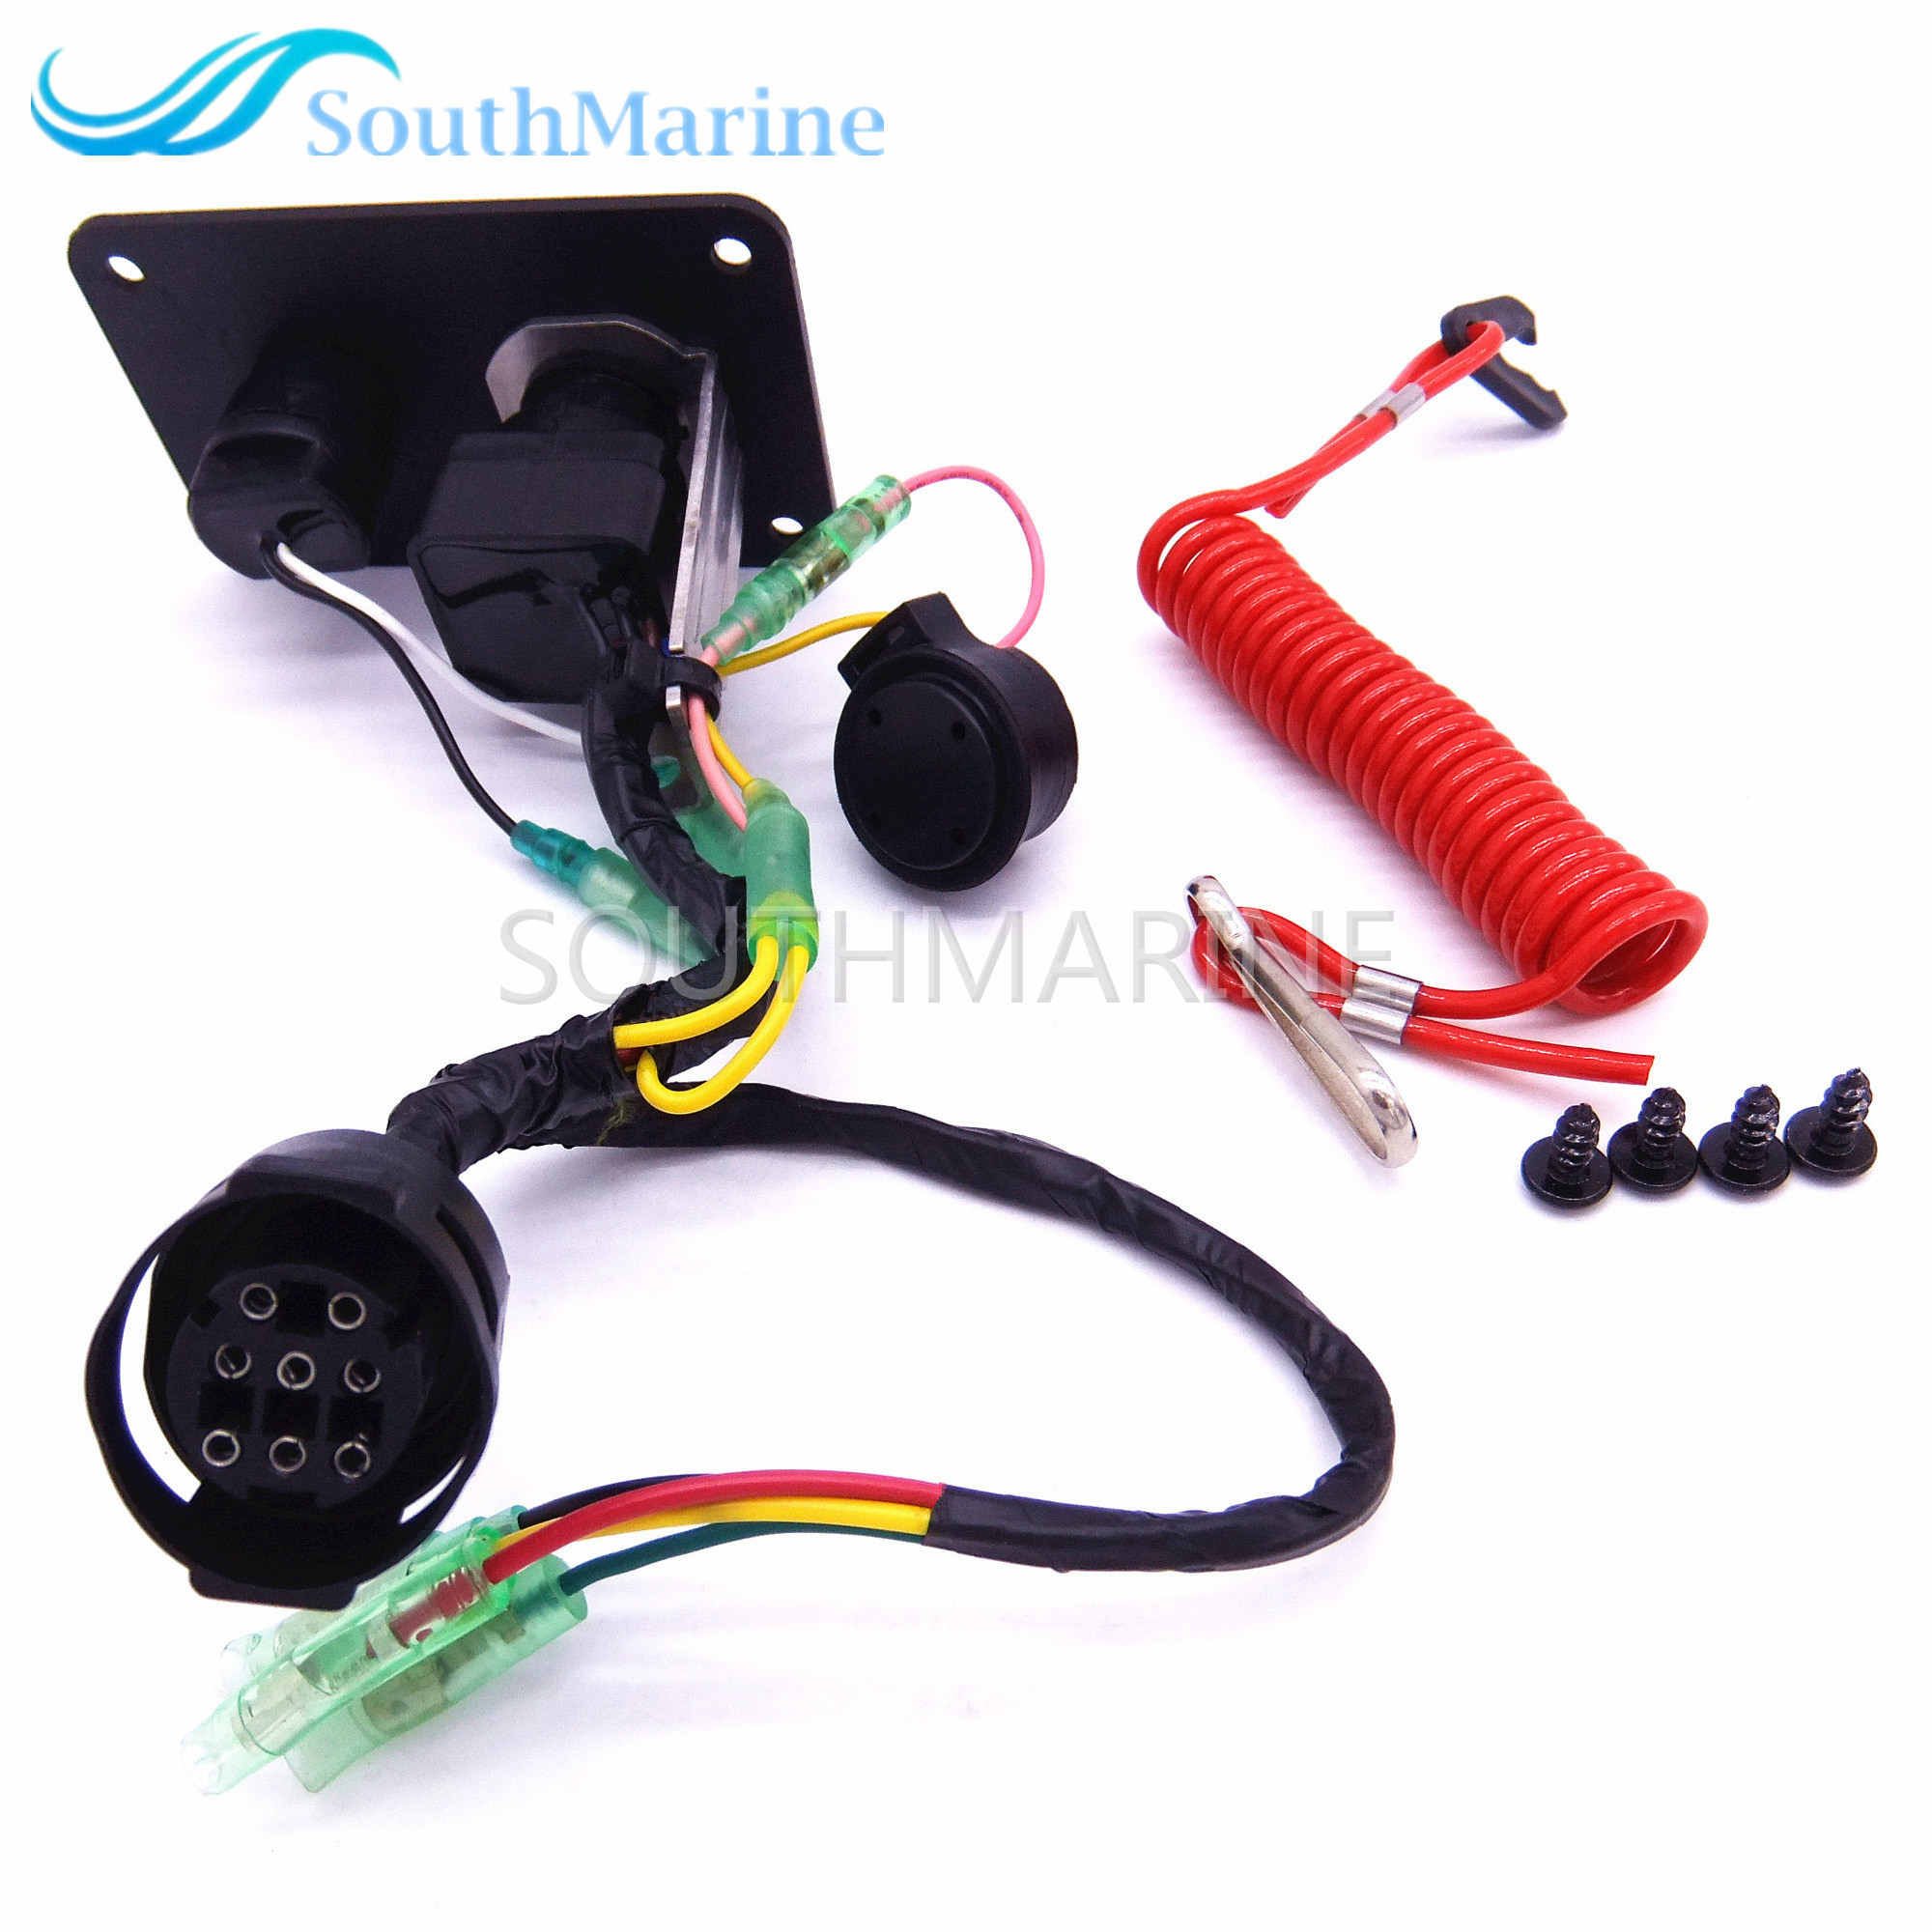 Outboard Single Engine 704-82570 704-82570-11-00 704-82570-12-00 704-82570-08-00 Switch Panel Main Switch Assembly for YamahaOutboard Single Engine 704-82570 704-82570-11-00 704-82570-12-00 704-82570-08-00 Switch Panel Main Switch Assembly for Yamaha